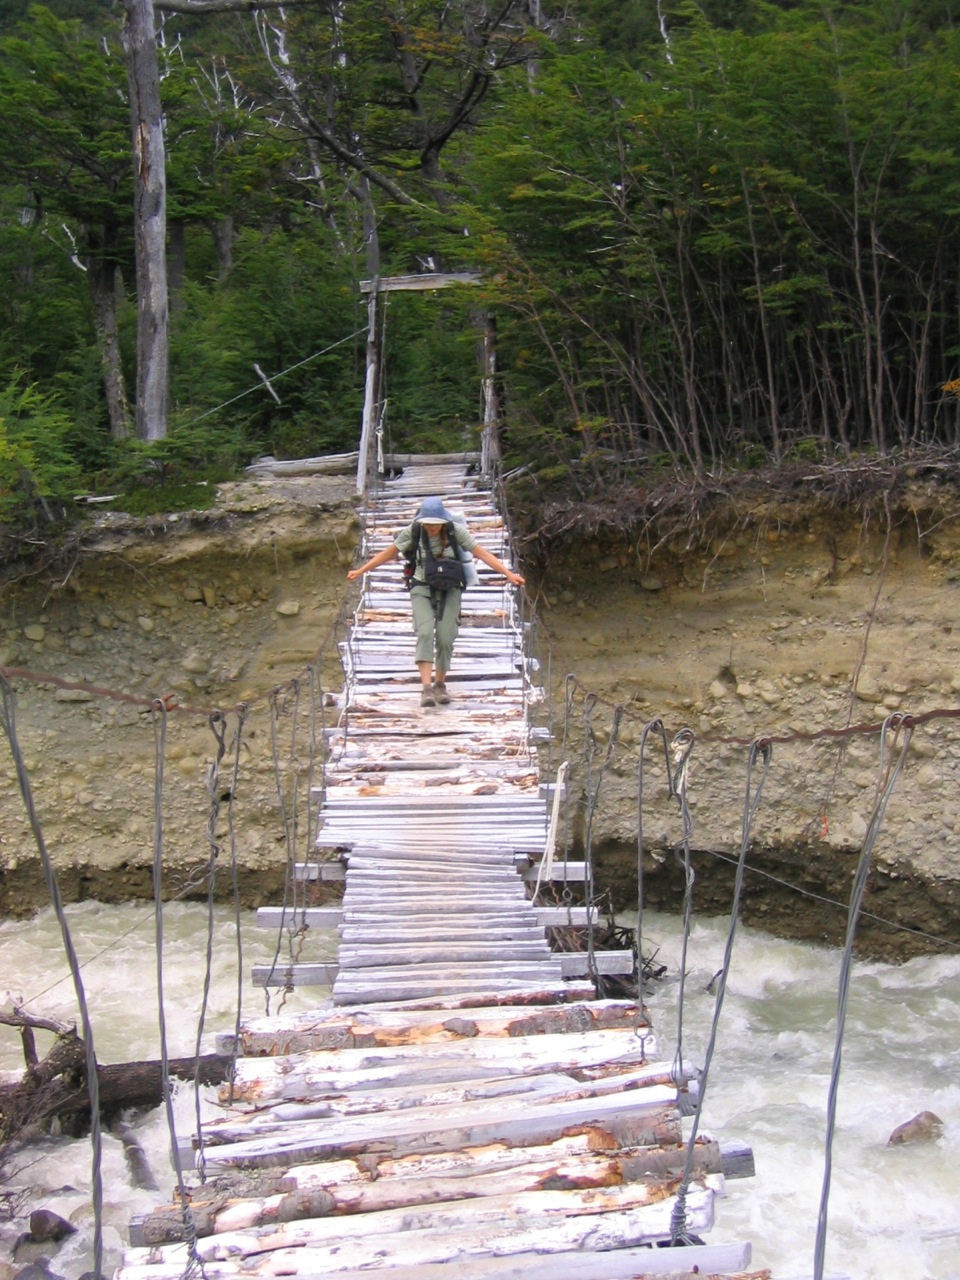 A very unsafe bridge to cross, Torres del Paine, Chile